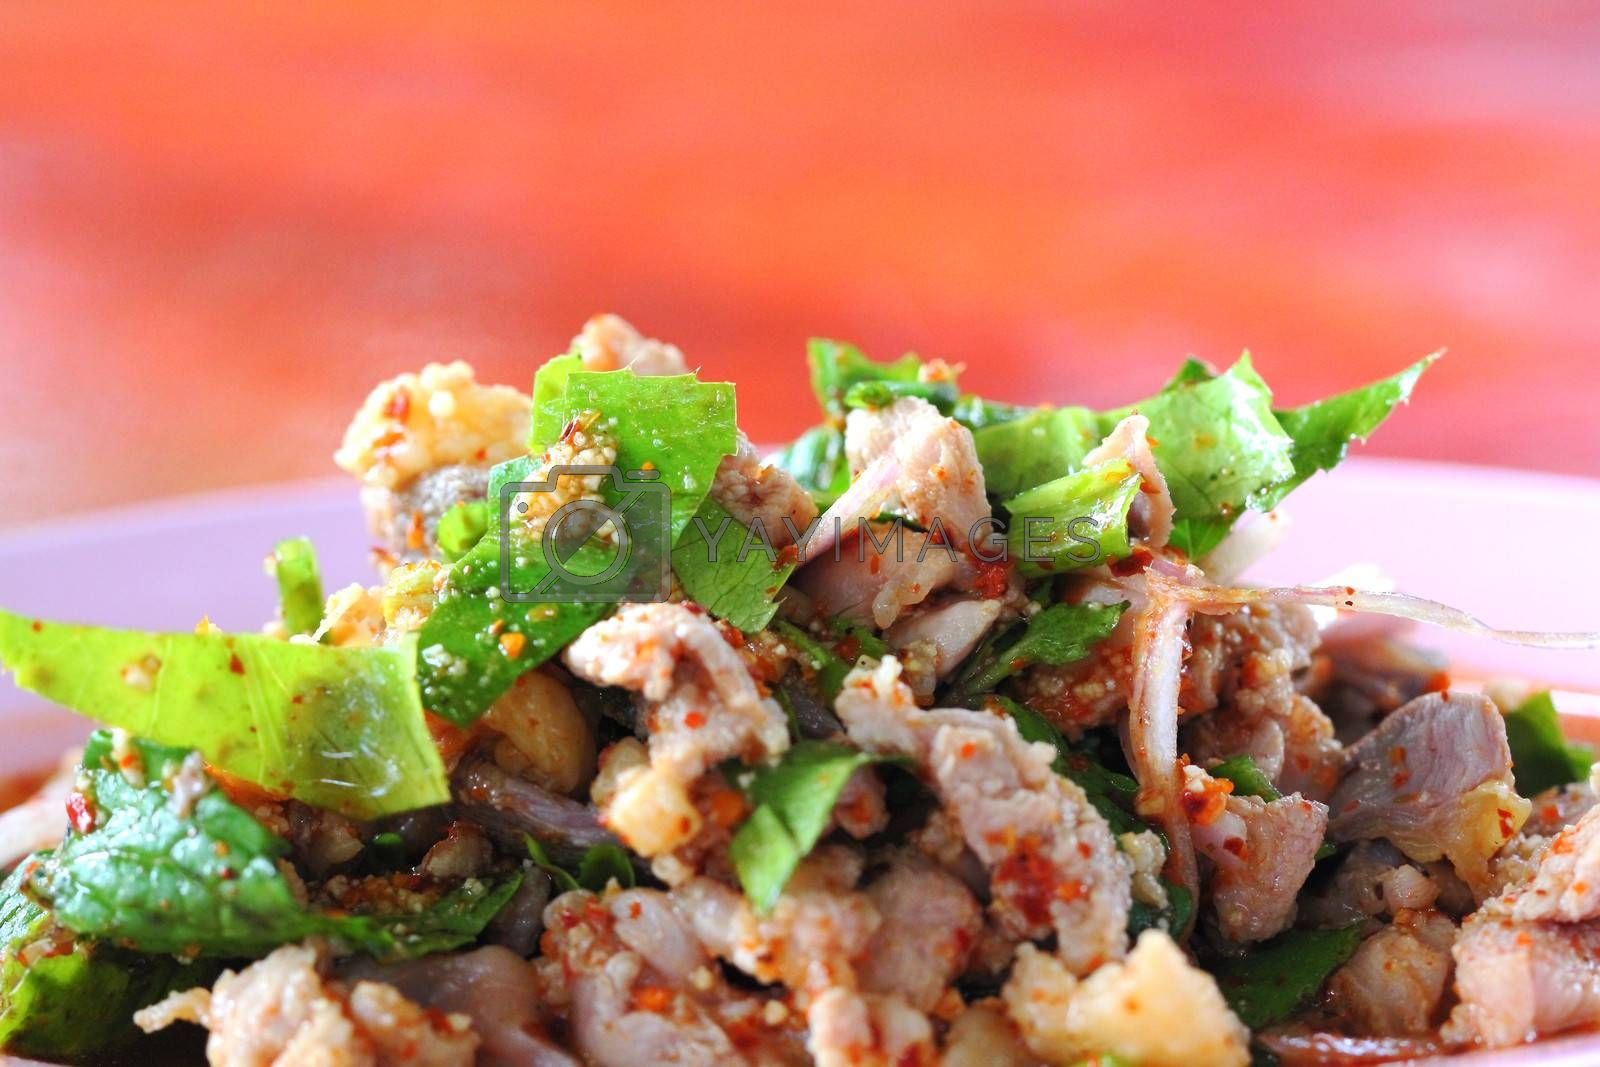 Spicy minced duck salad with green vegetables and chillies